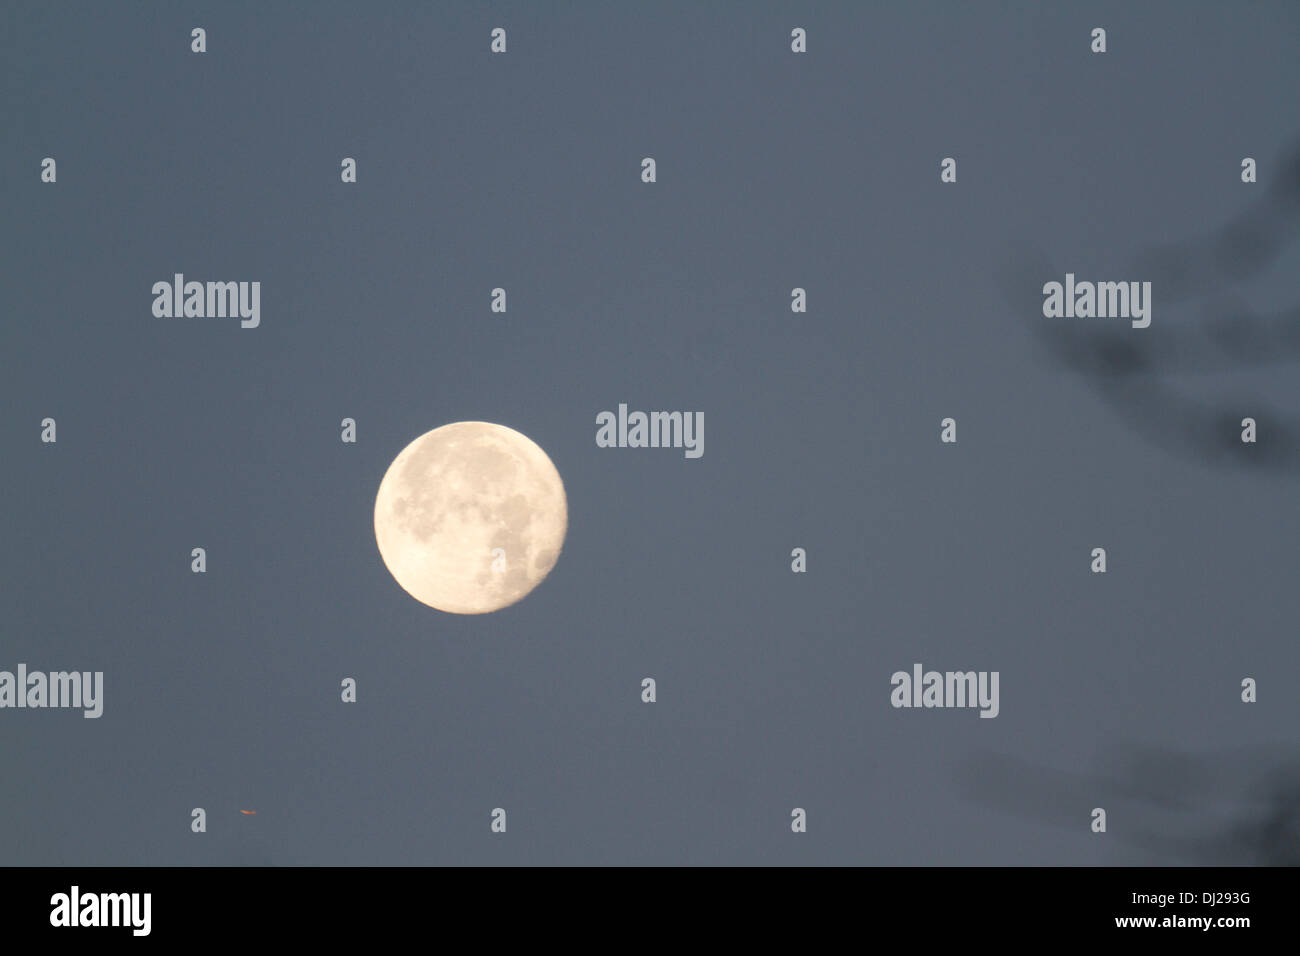 Wimbledon London,UK. 19th November 2013. A full moon appears at dusk over residential houses Credit:  amer ghazzal/Alamy Live News - Stock Image